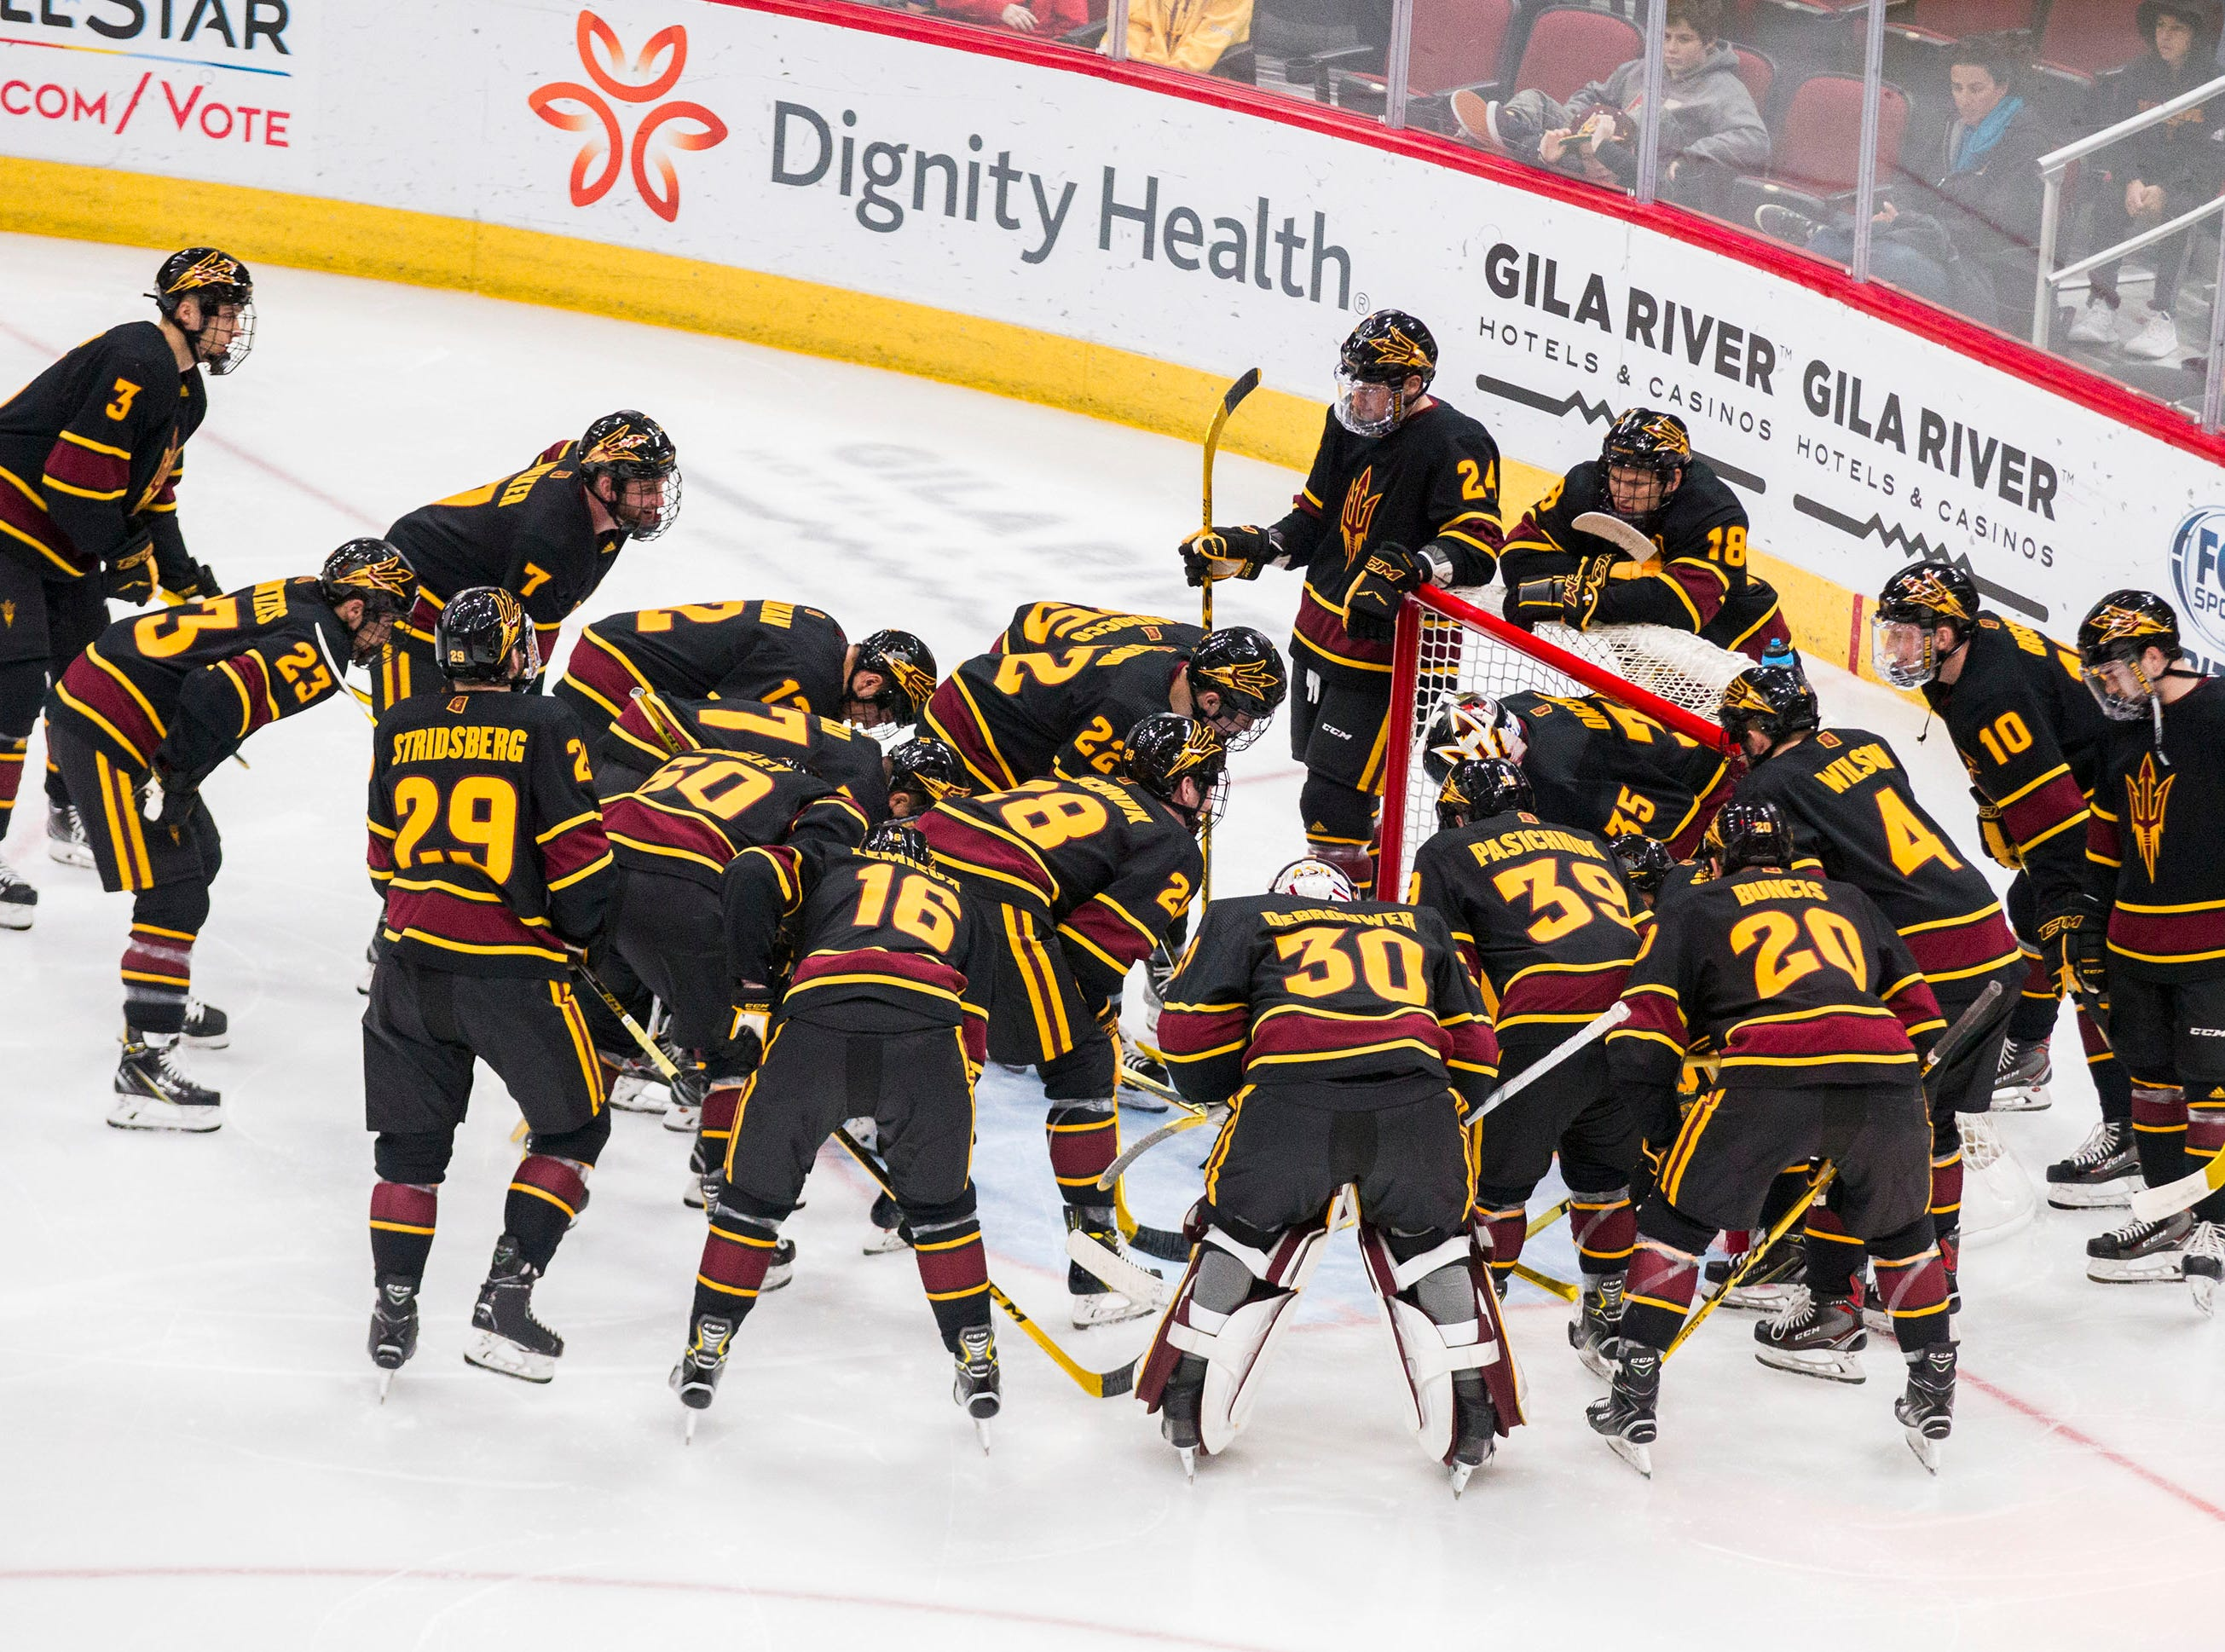 Arizona State University players huddle around the goal before their match against Clarkson in the 2018 Desert Hockey Classic in Glendale, Friday, Dec. 28, 2018.